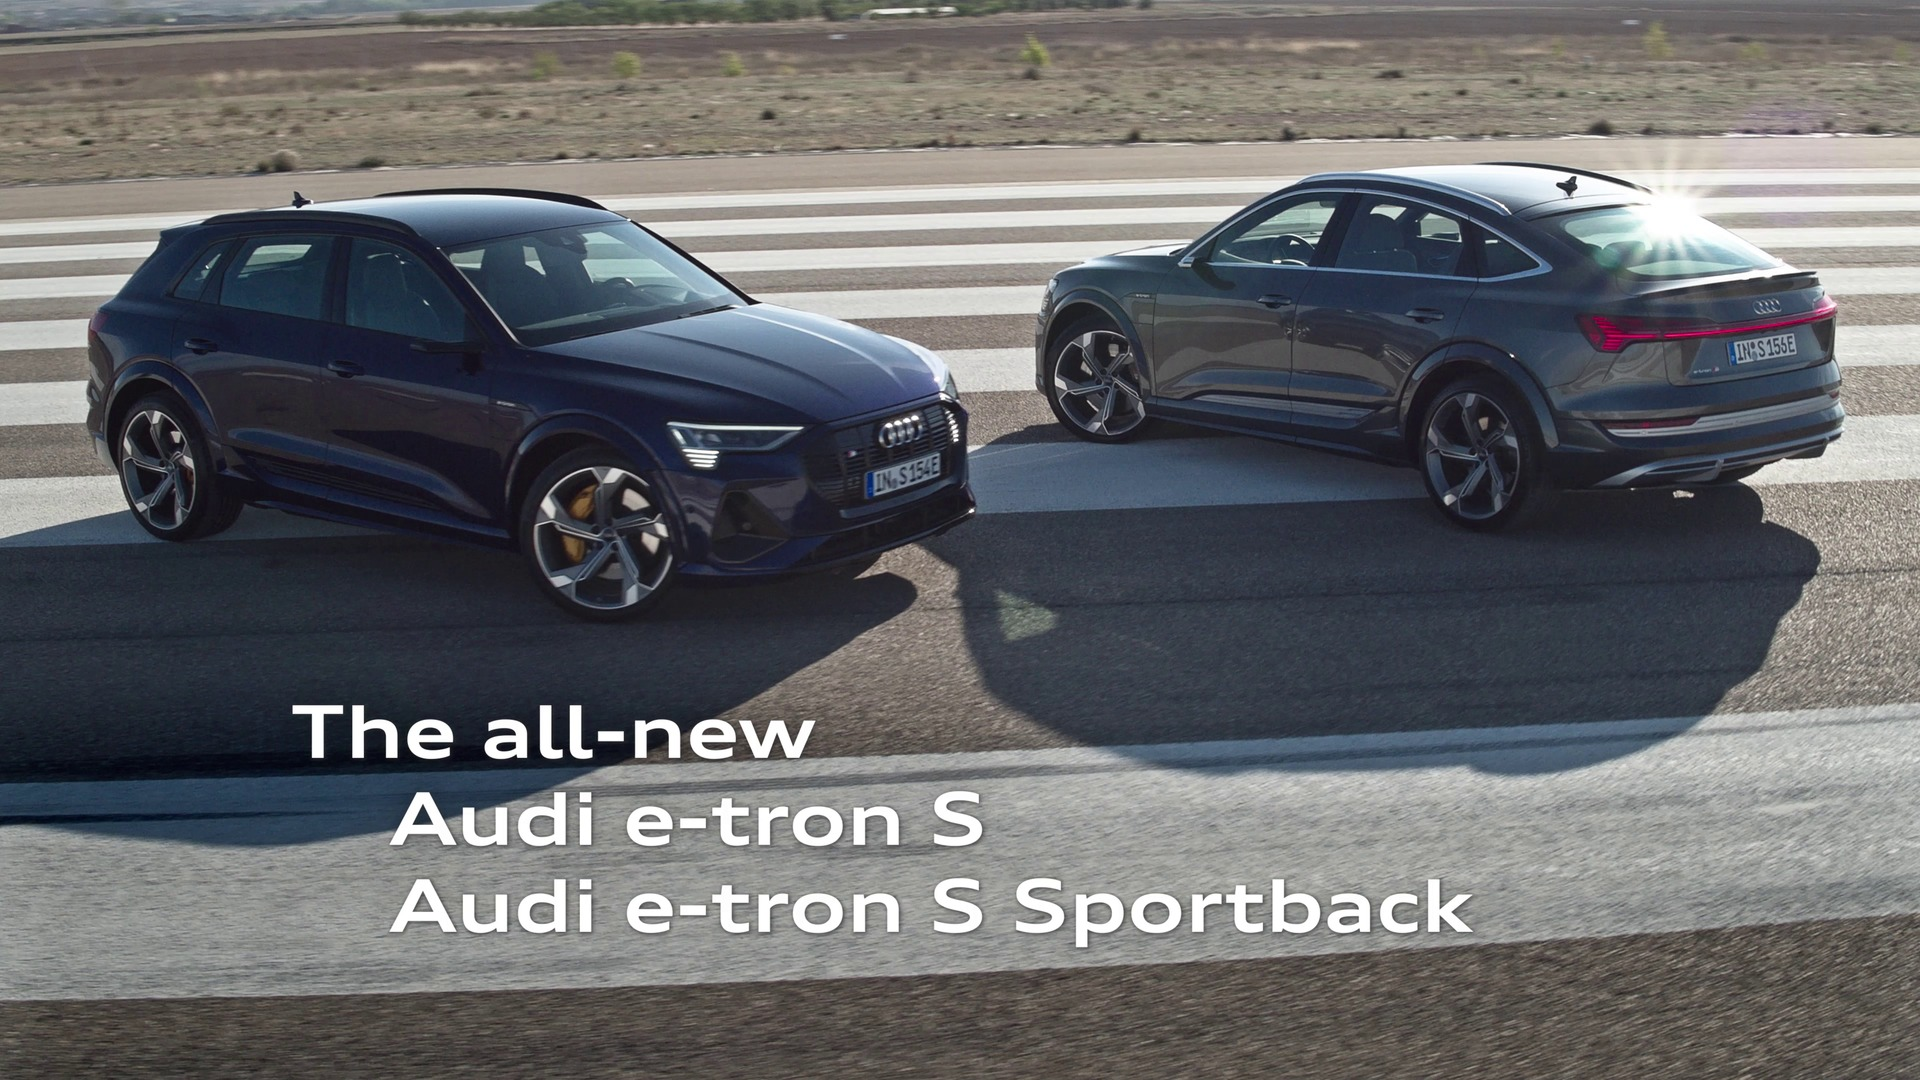 Consequently electric – the Audi e-tron S and Audi e-tron S Sportback